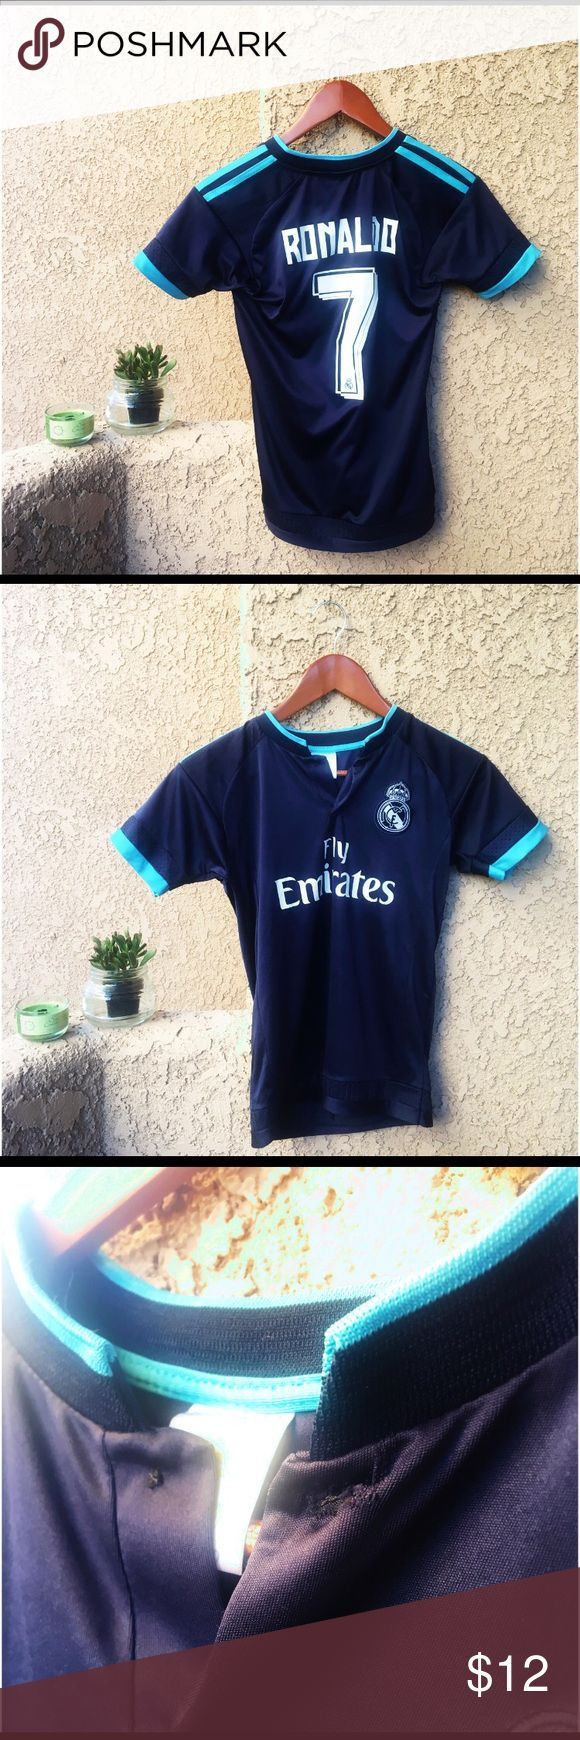 Women's Real Madrid Ronaldo Soccer Jersey Women's Real Madrid Ronaldo jersey. Material: 100% micro. It is in good, used condition. There is very minimal cracking on the lettering (won't be able to see it unless you're looking close). It is missing the button at the neck, however I do have an extra button that I can include in the package. You will need to sew it on yourself if desired. Tops Tees - Short Sleeve